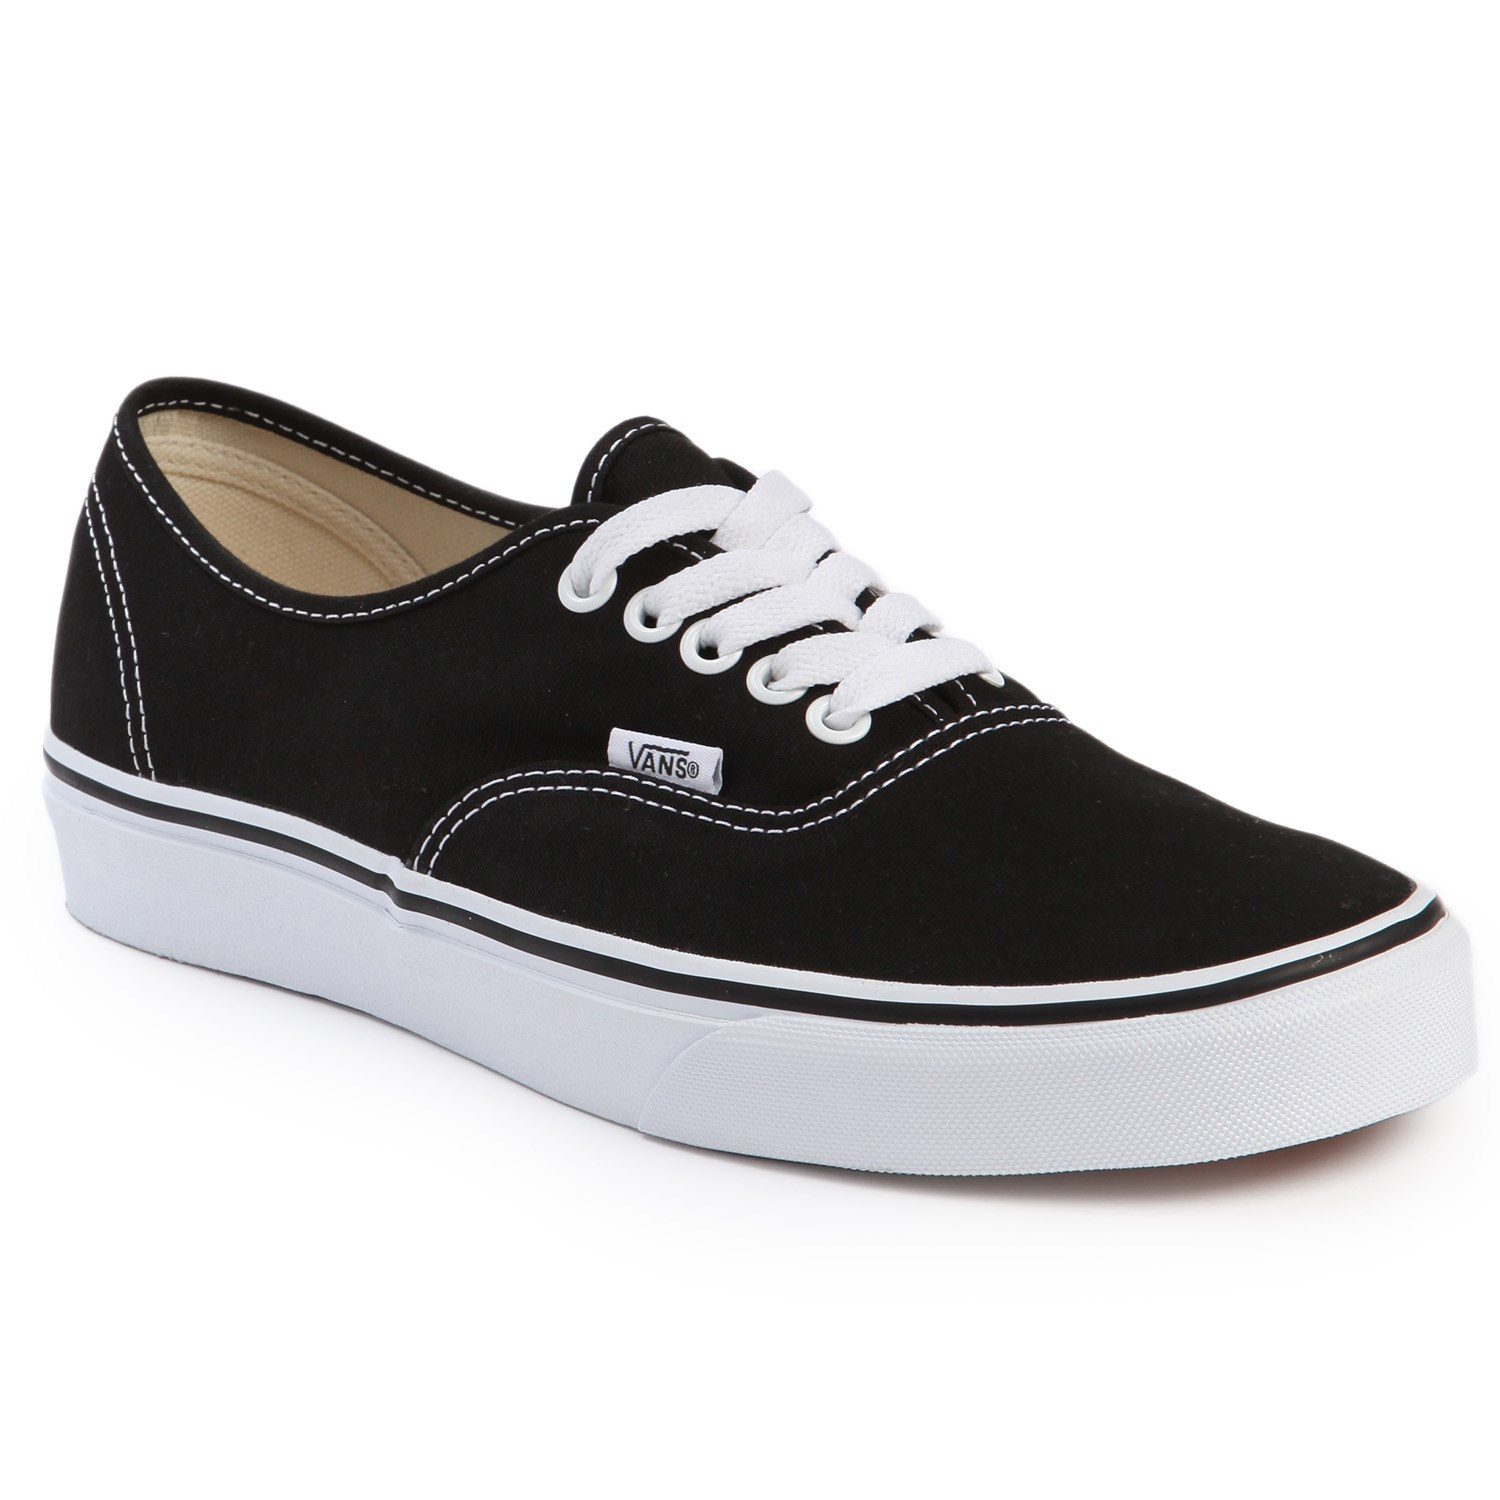 Buy Vans Shoes On Sale